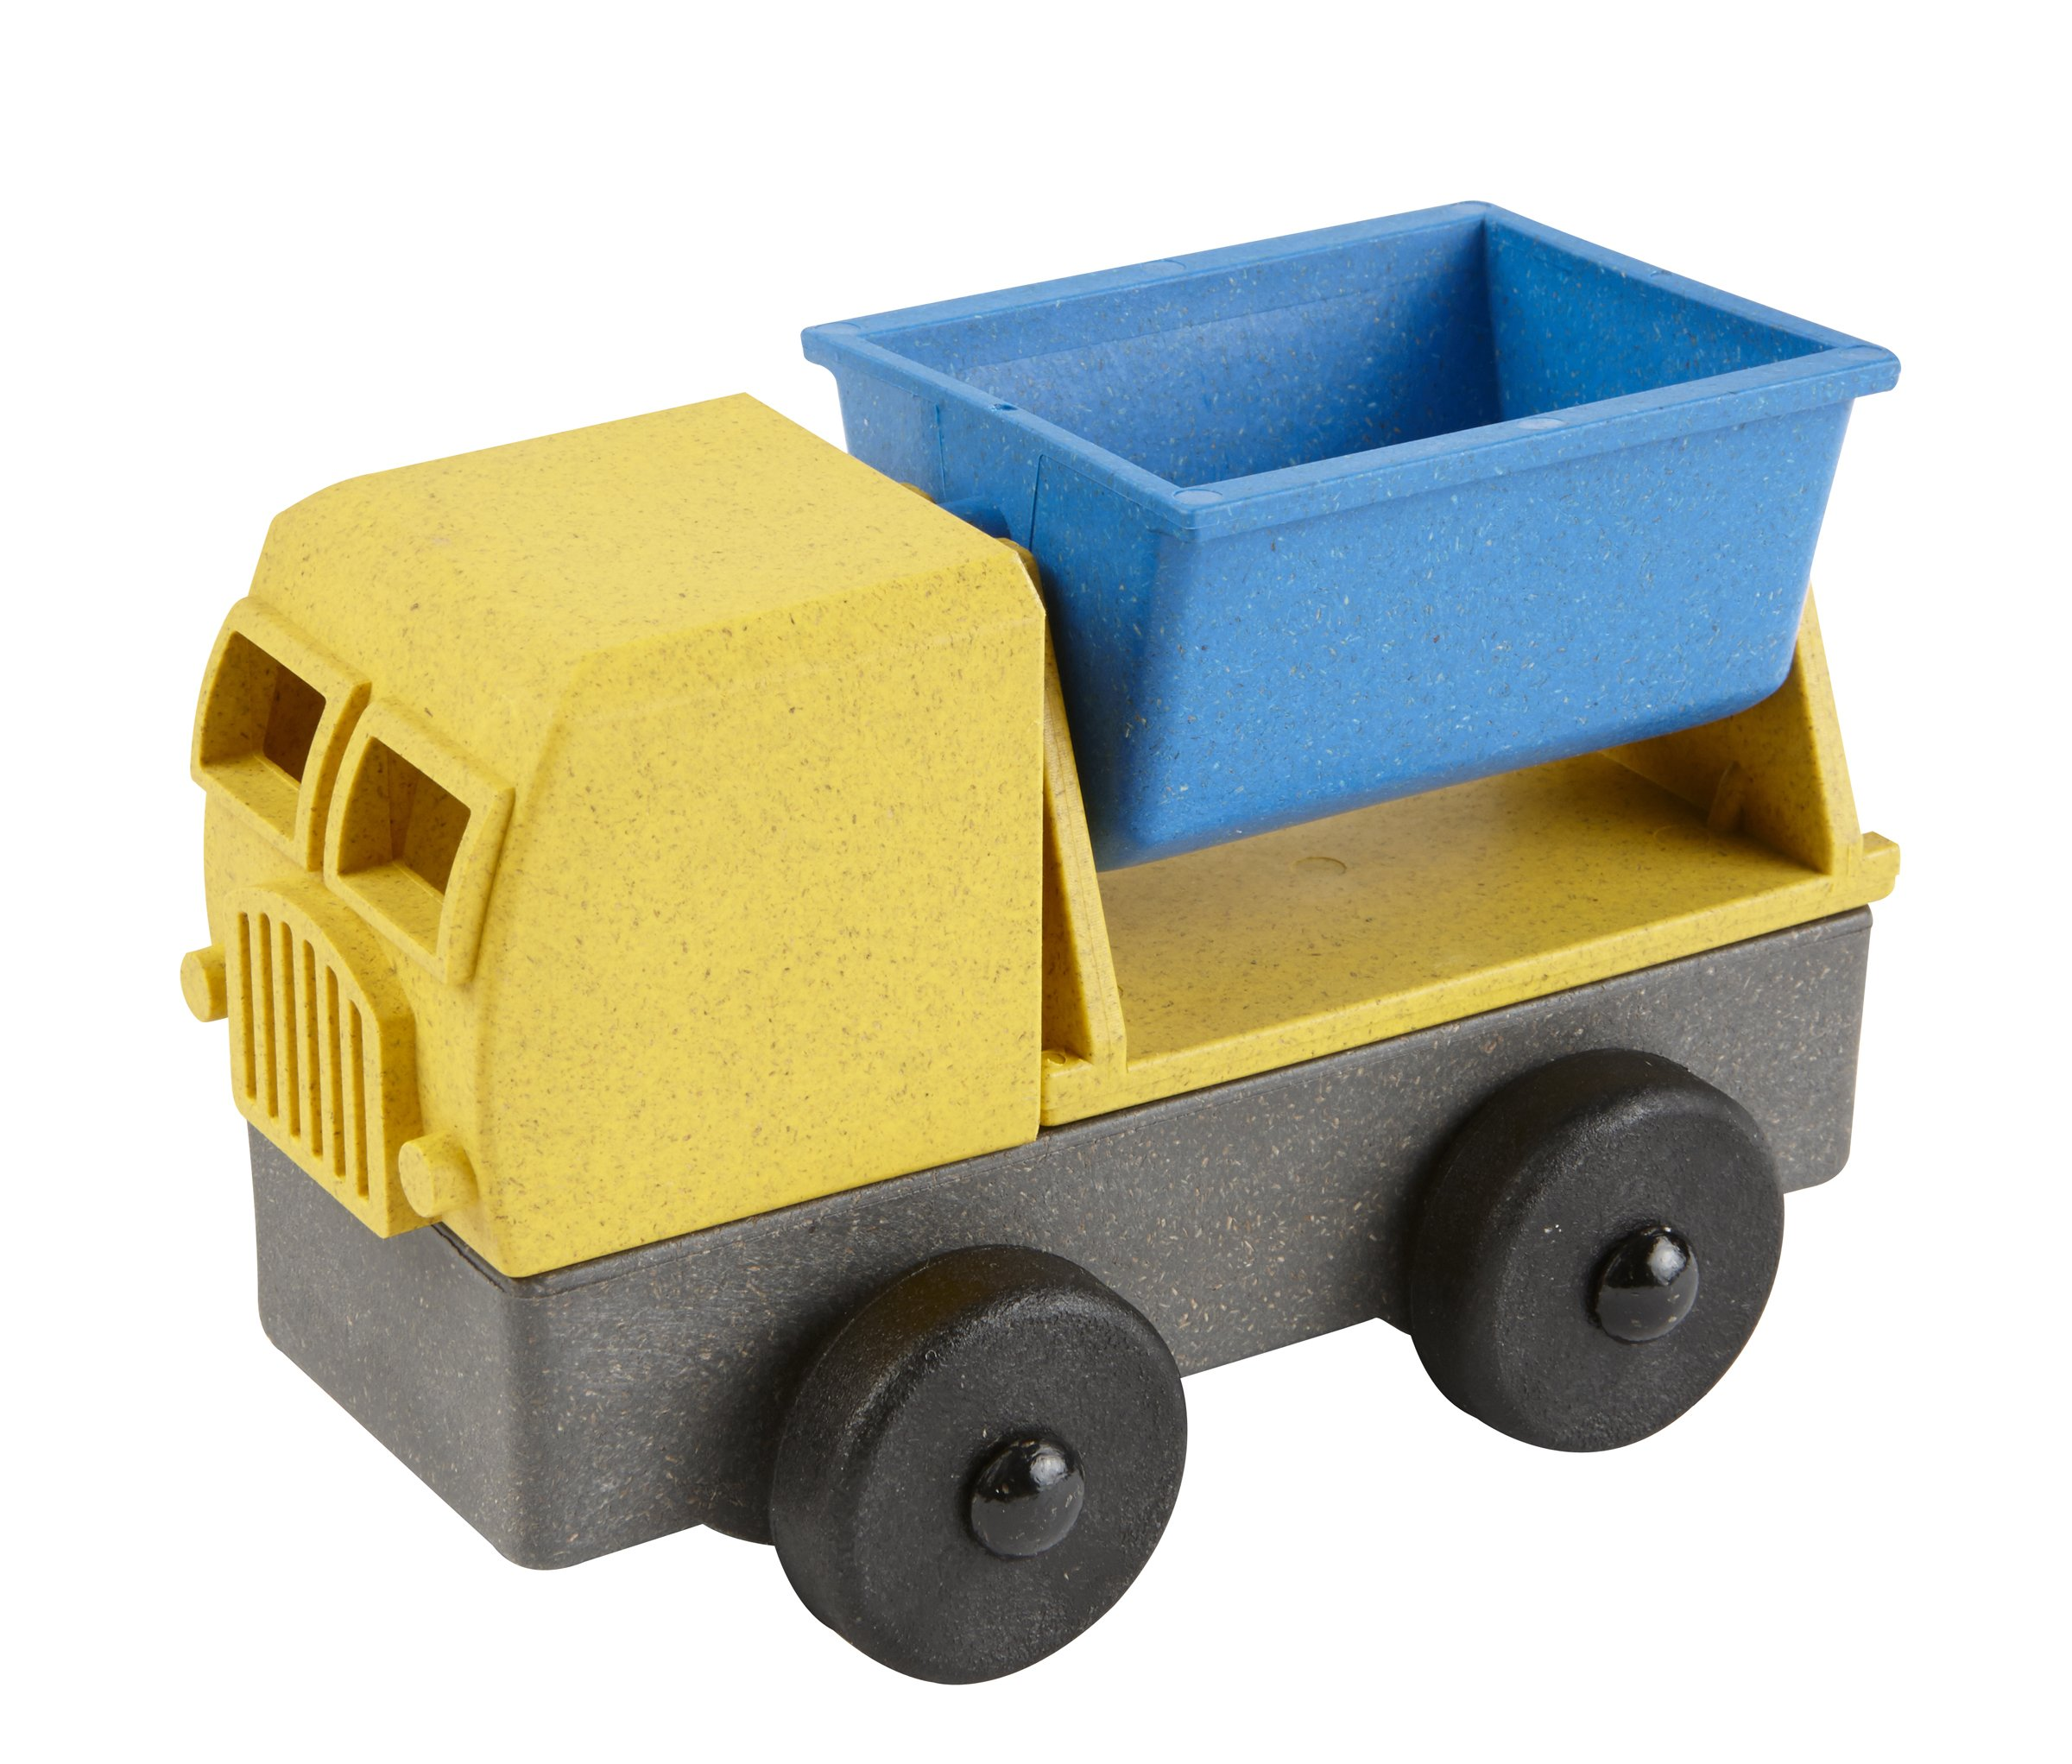 Luke's Toy Factory Eco-Friendly 3-D Puzzle Tipper Truck